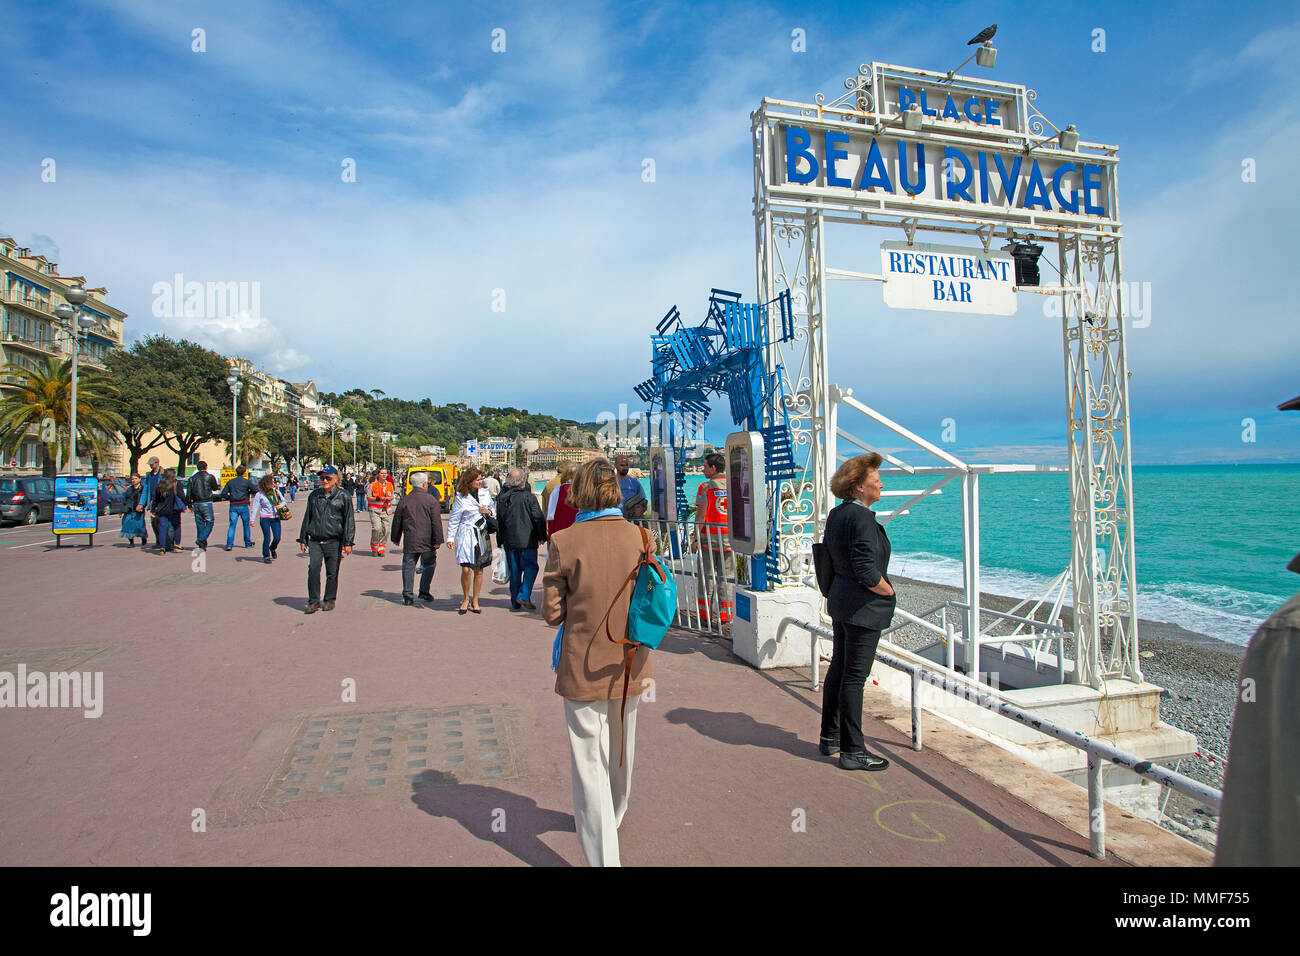 Staircase to Beau Rivage, bar and restaurant at the Promenade des Anglais, Boulevard, Nice, Côte d'Azur, Alpes-Maritimes, South France, France, Europe - Stock Image